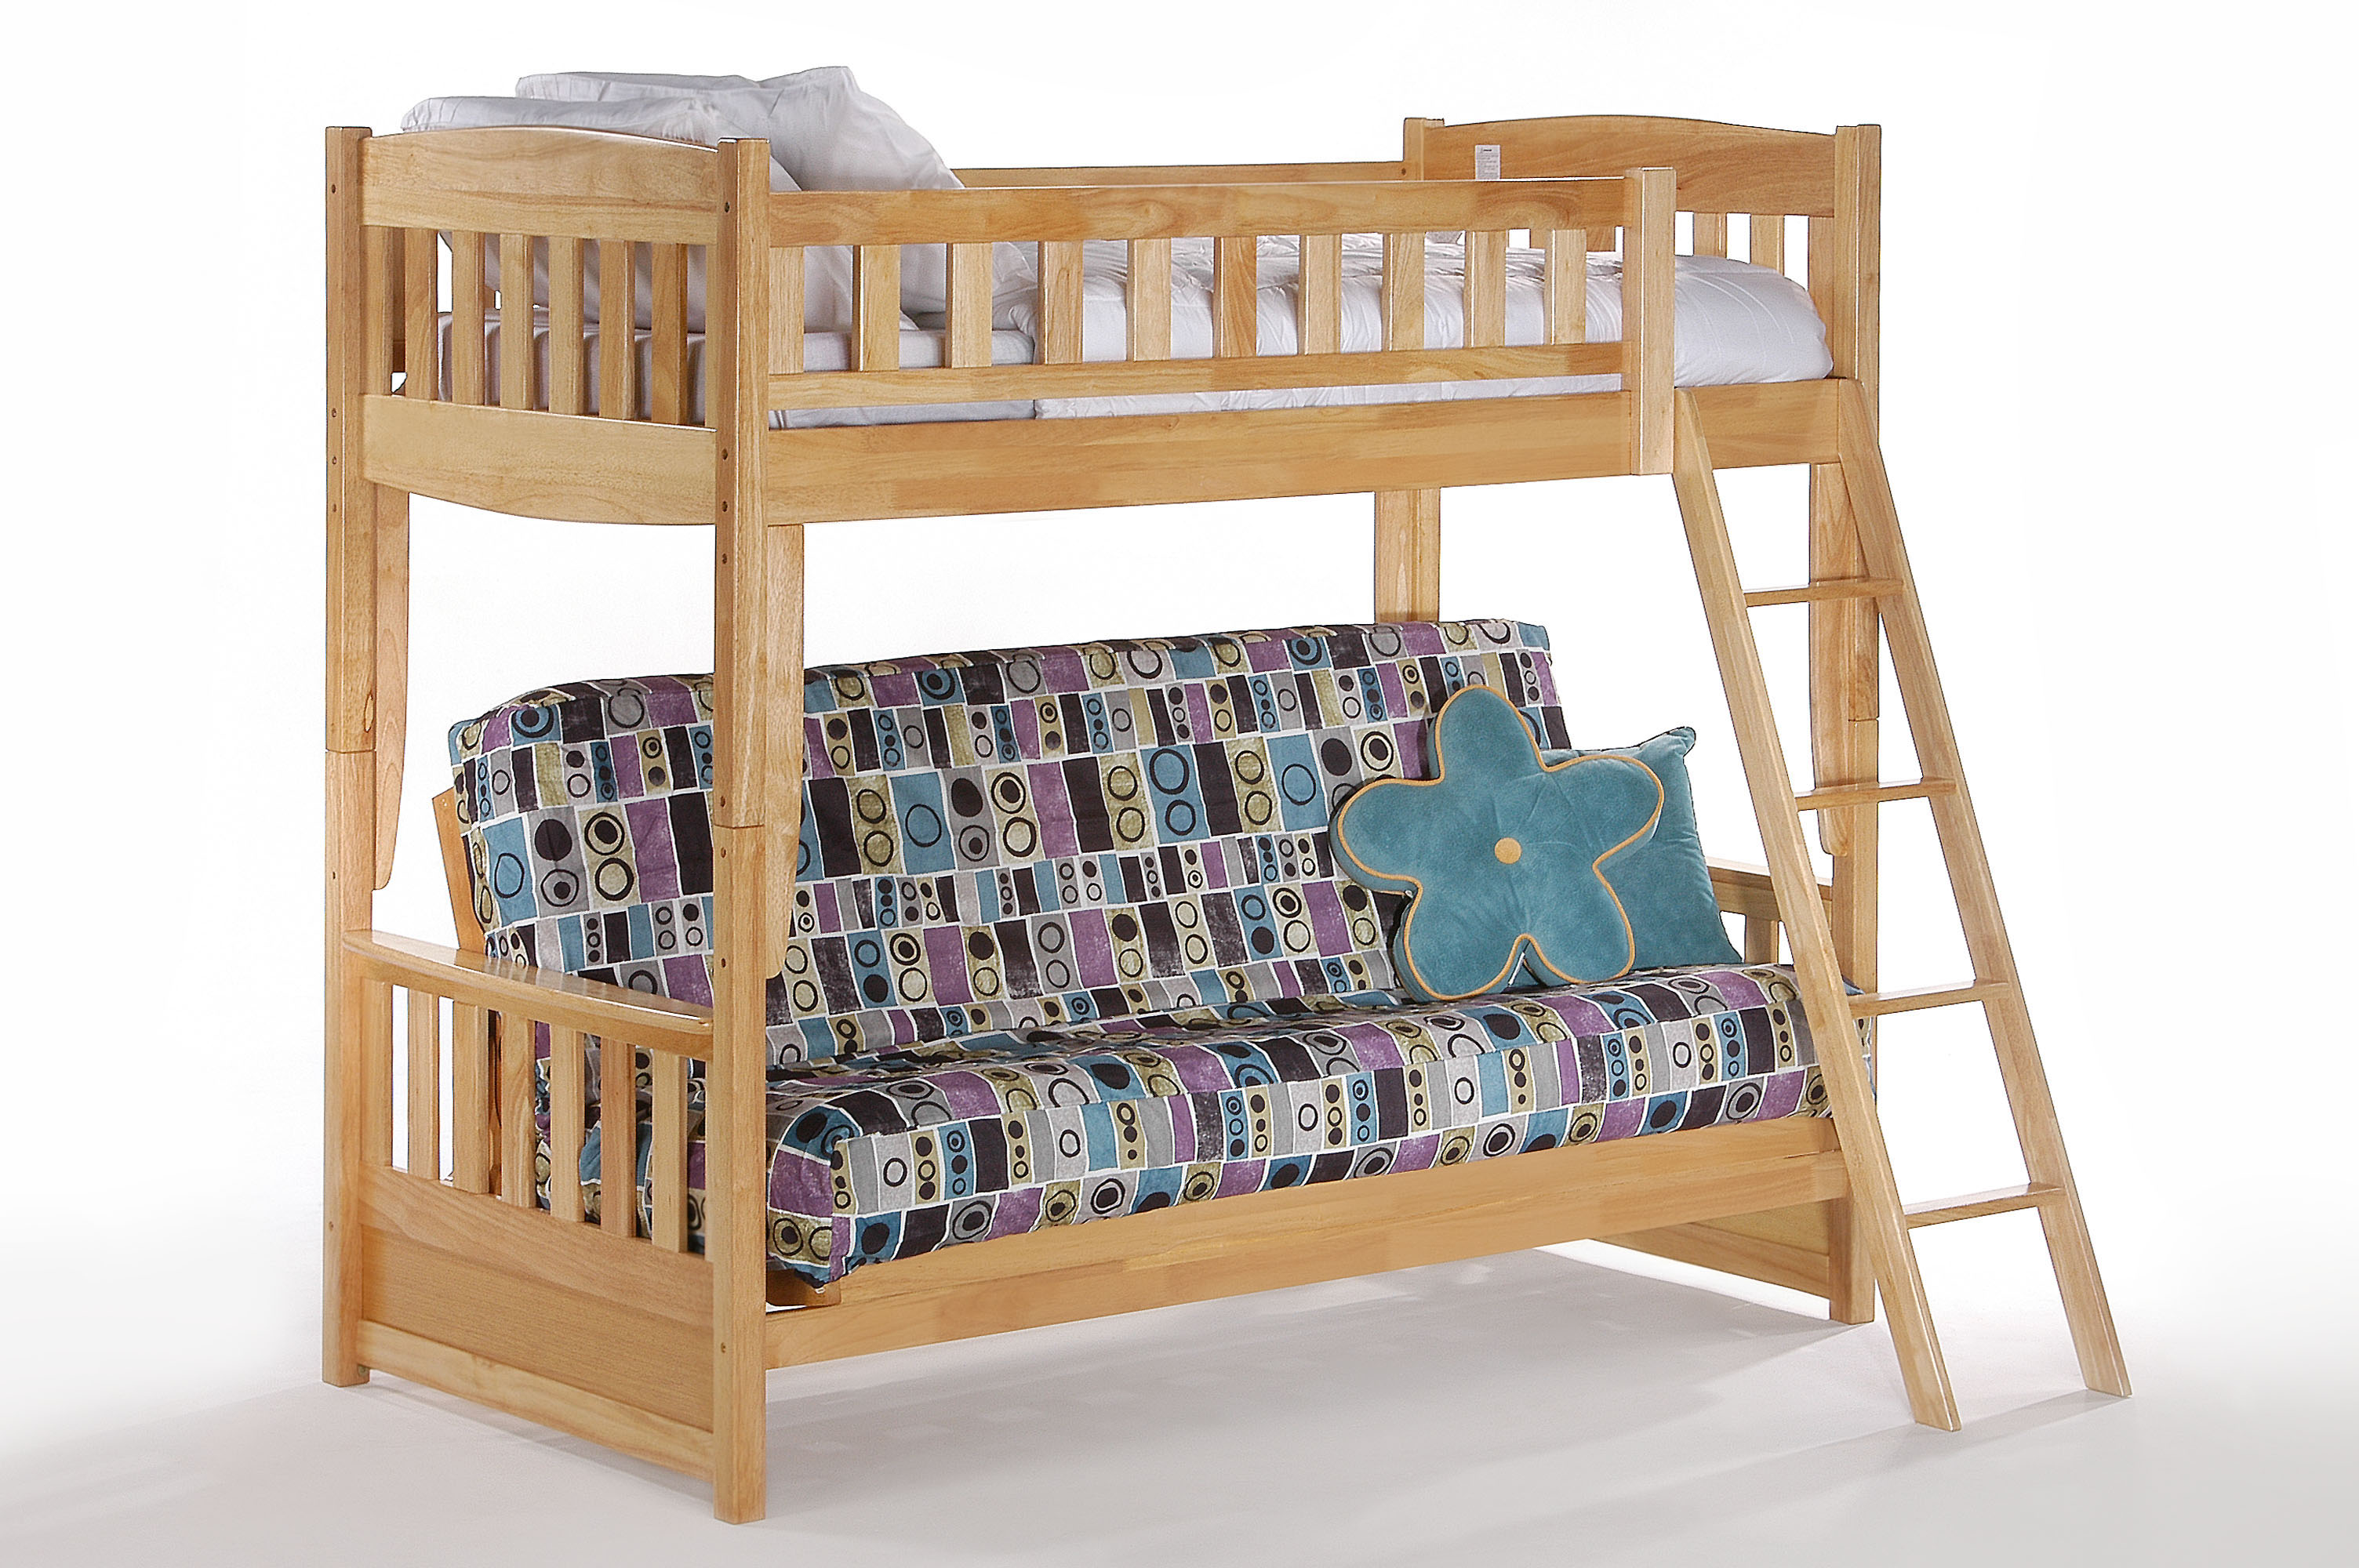 inspired with at the and cadsden futon of full its over bed twin image advantages bunk mattress plough included